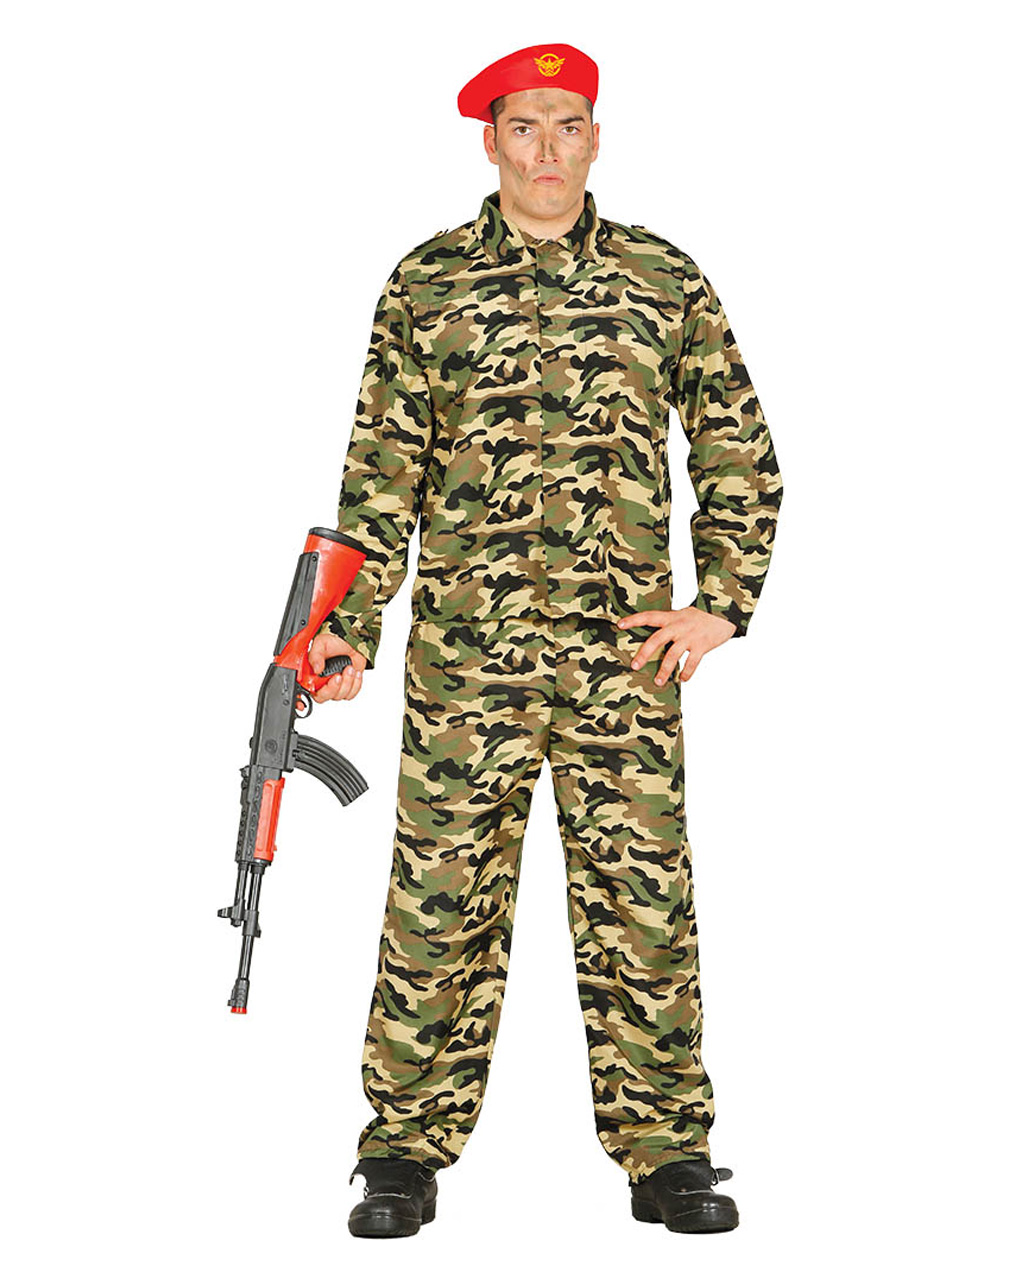 soldier costume camouflage with cap to order